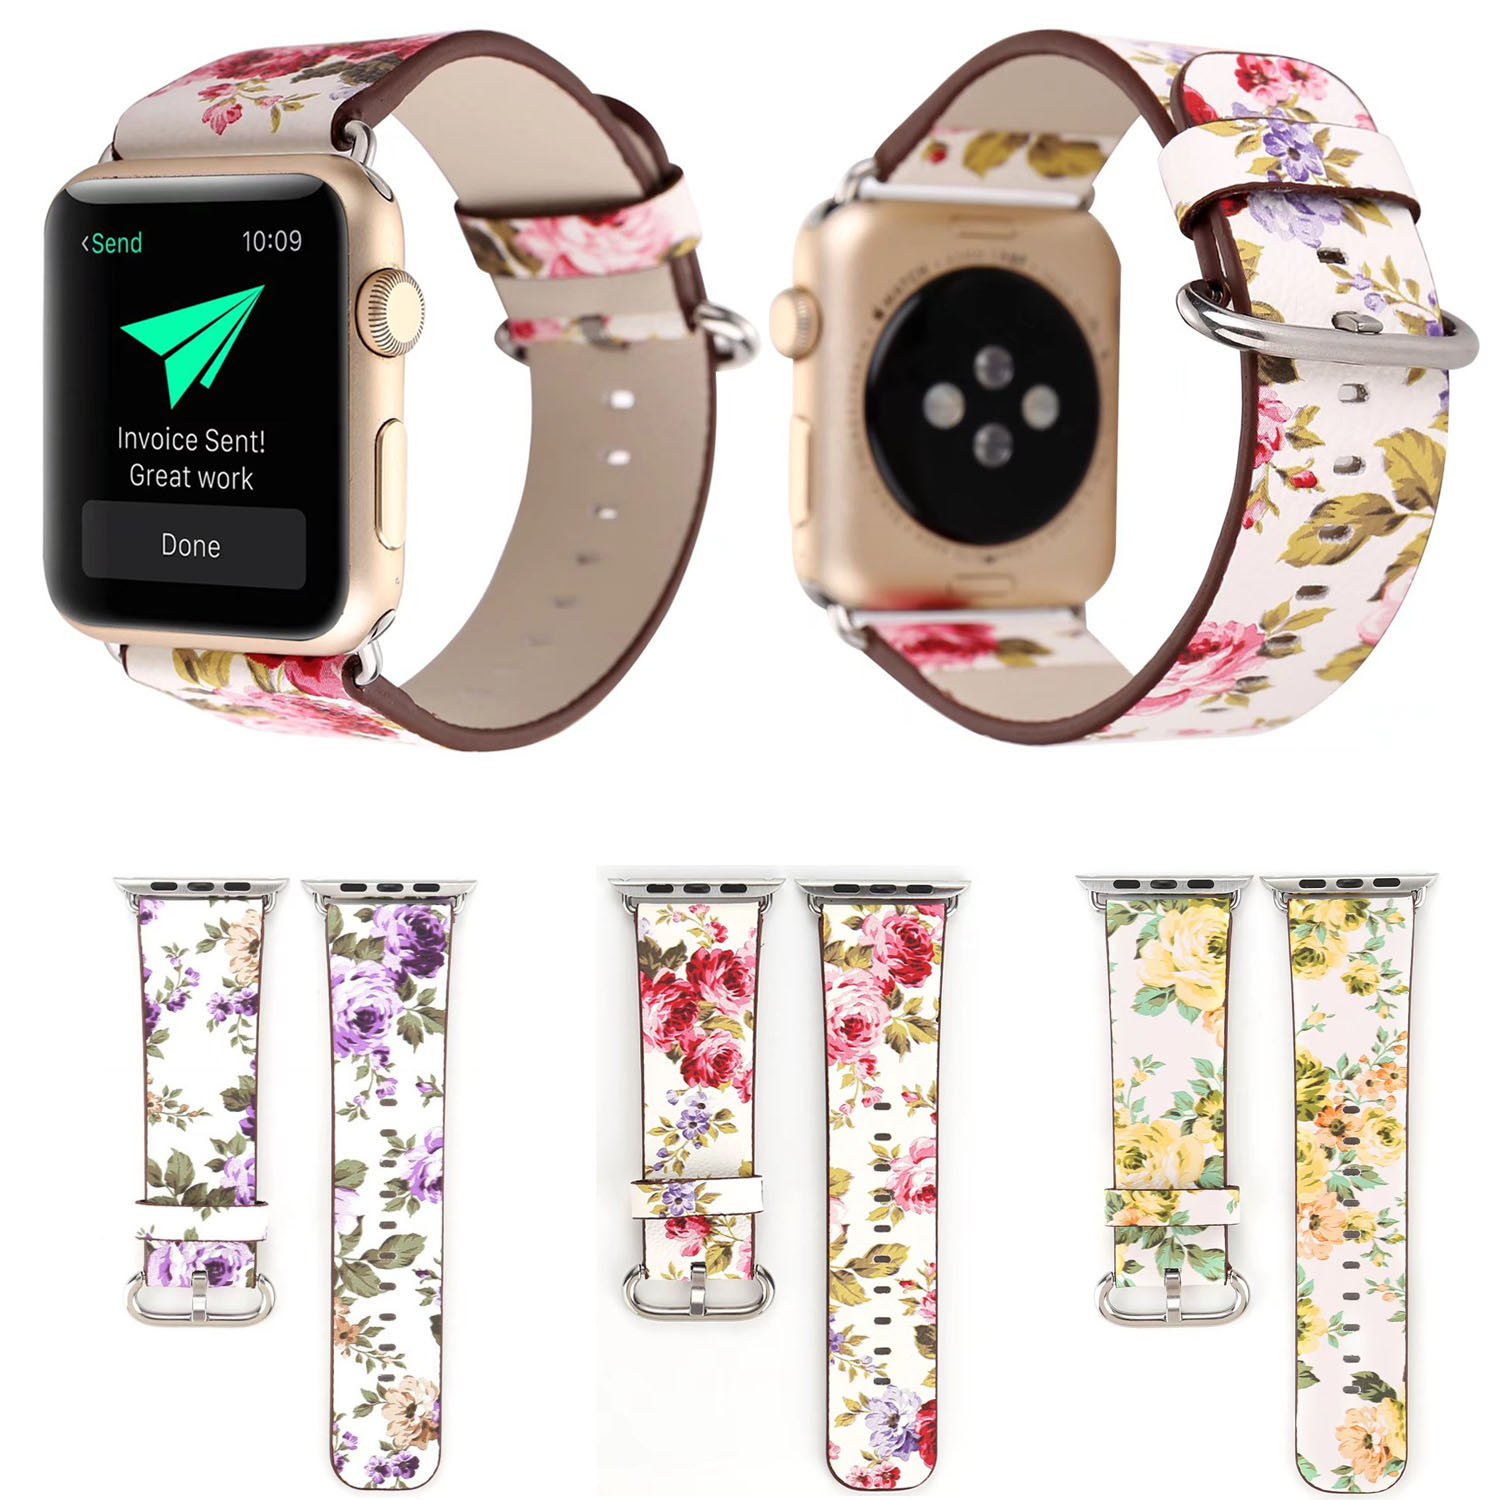 Colorful Flower Leather Band for Apple Watch Series 3 2 1 Strap for iWatch Rural Floral Wristbands Bracelet w Adapters ConnectorColorful Flower Leather Band for Apple Watch Series 3 2 1 Strap for iWatch Rural Floral Wristbands Bracelet w Adapters Connector